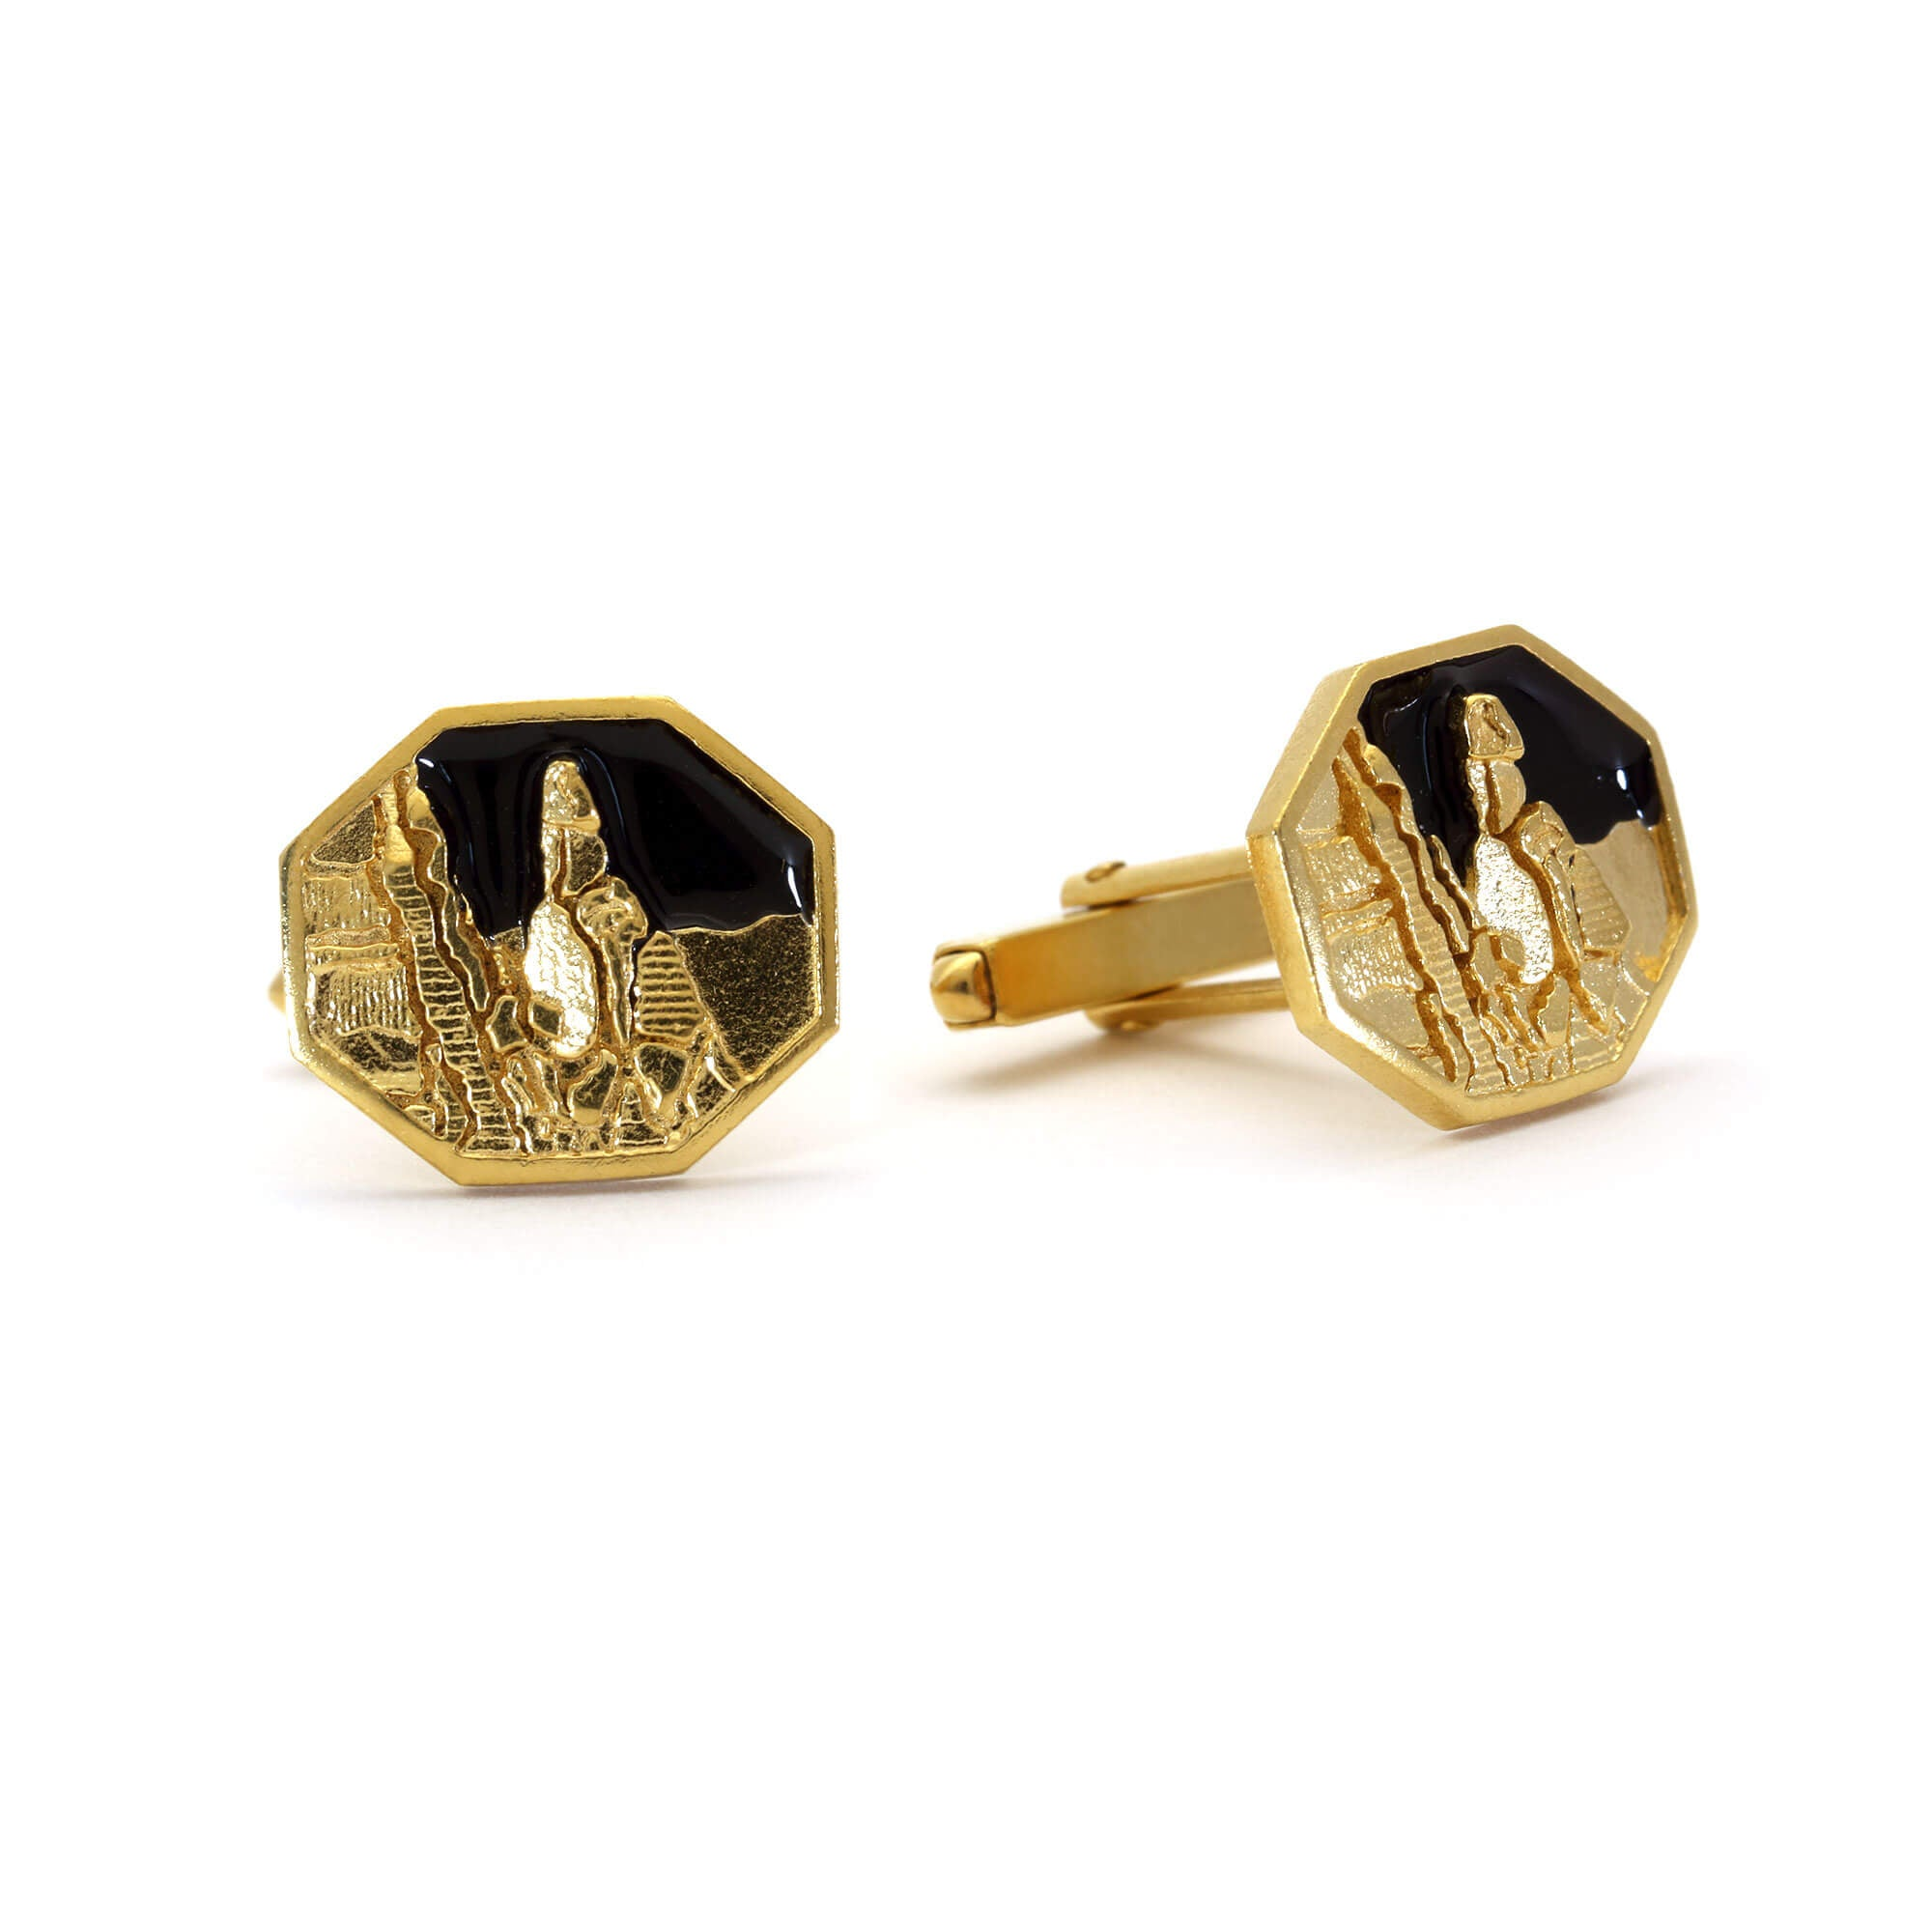 Napes Needle Black Enamel and Yellow Gold Cufflink